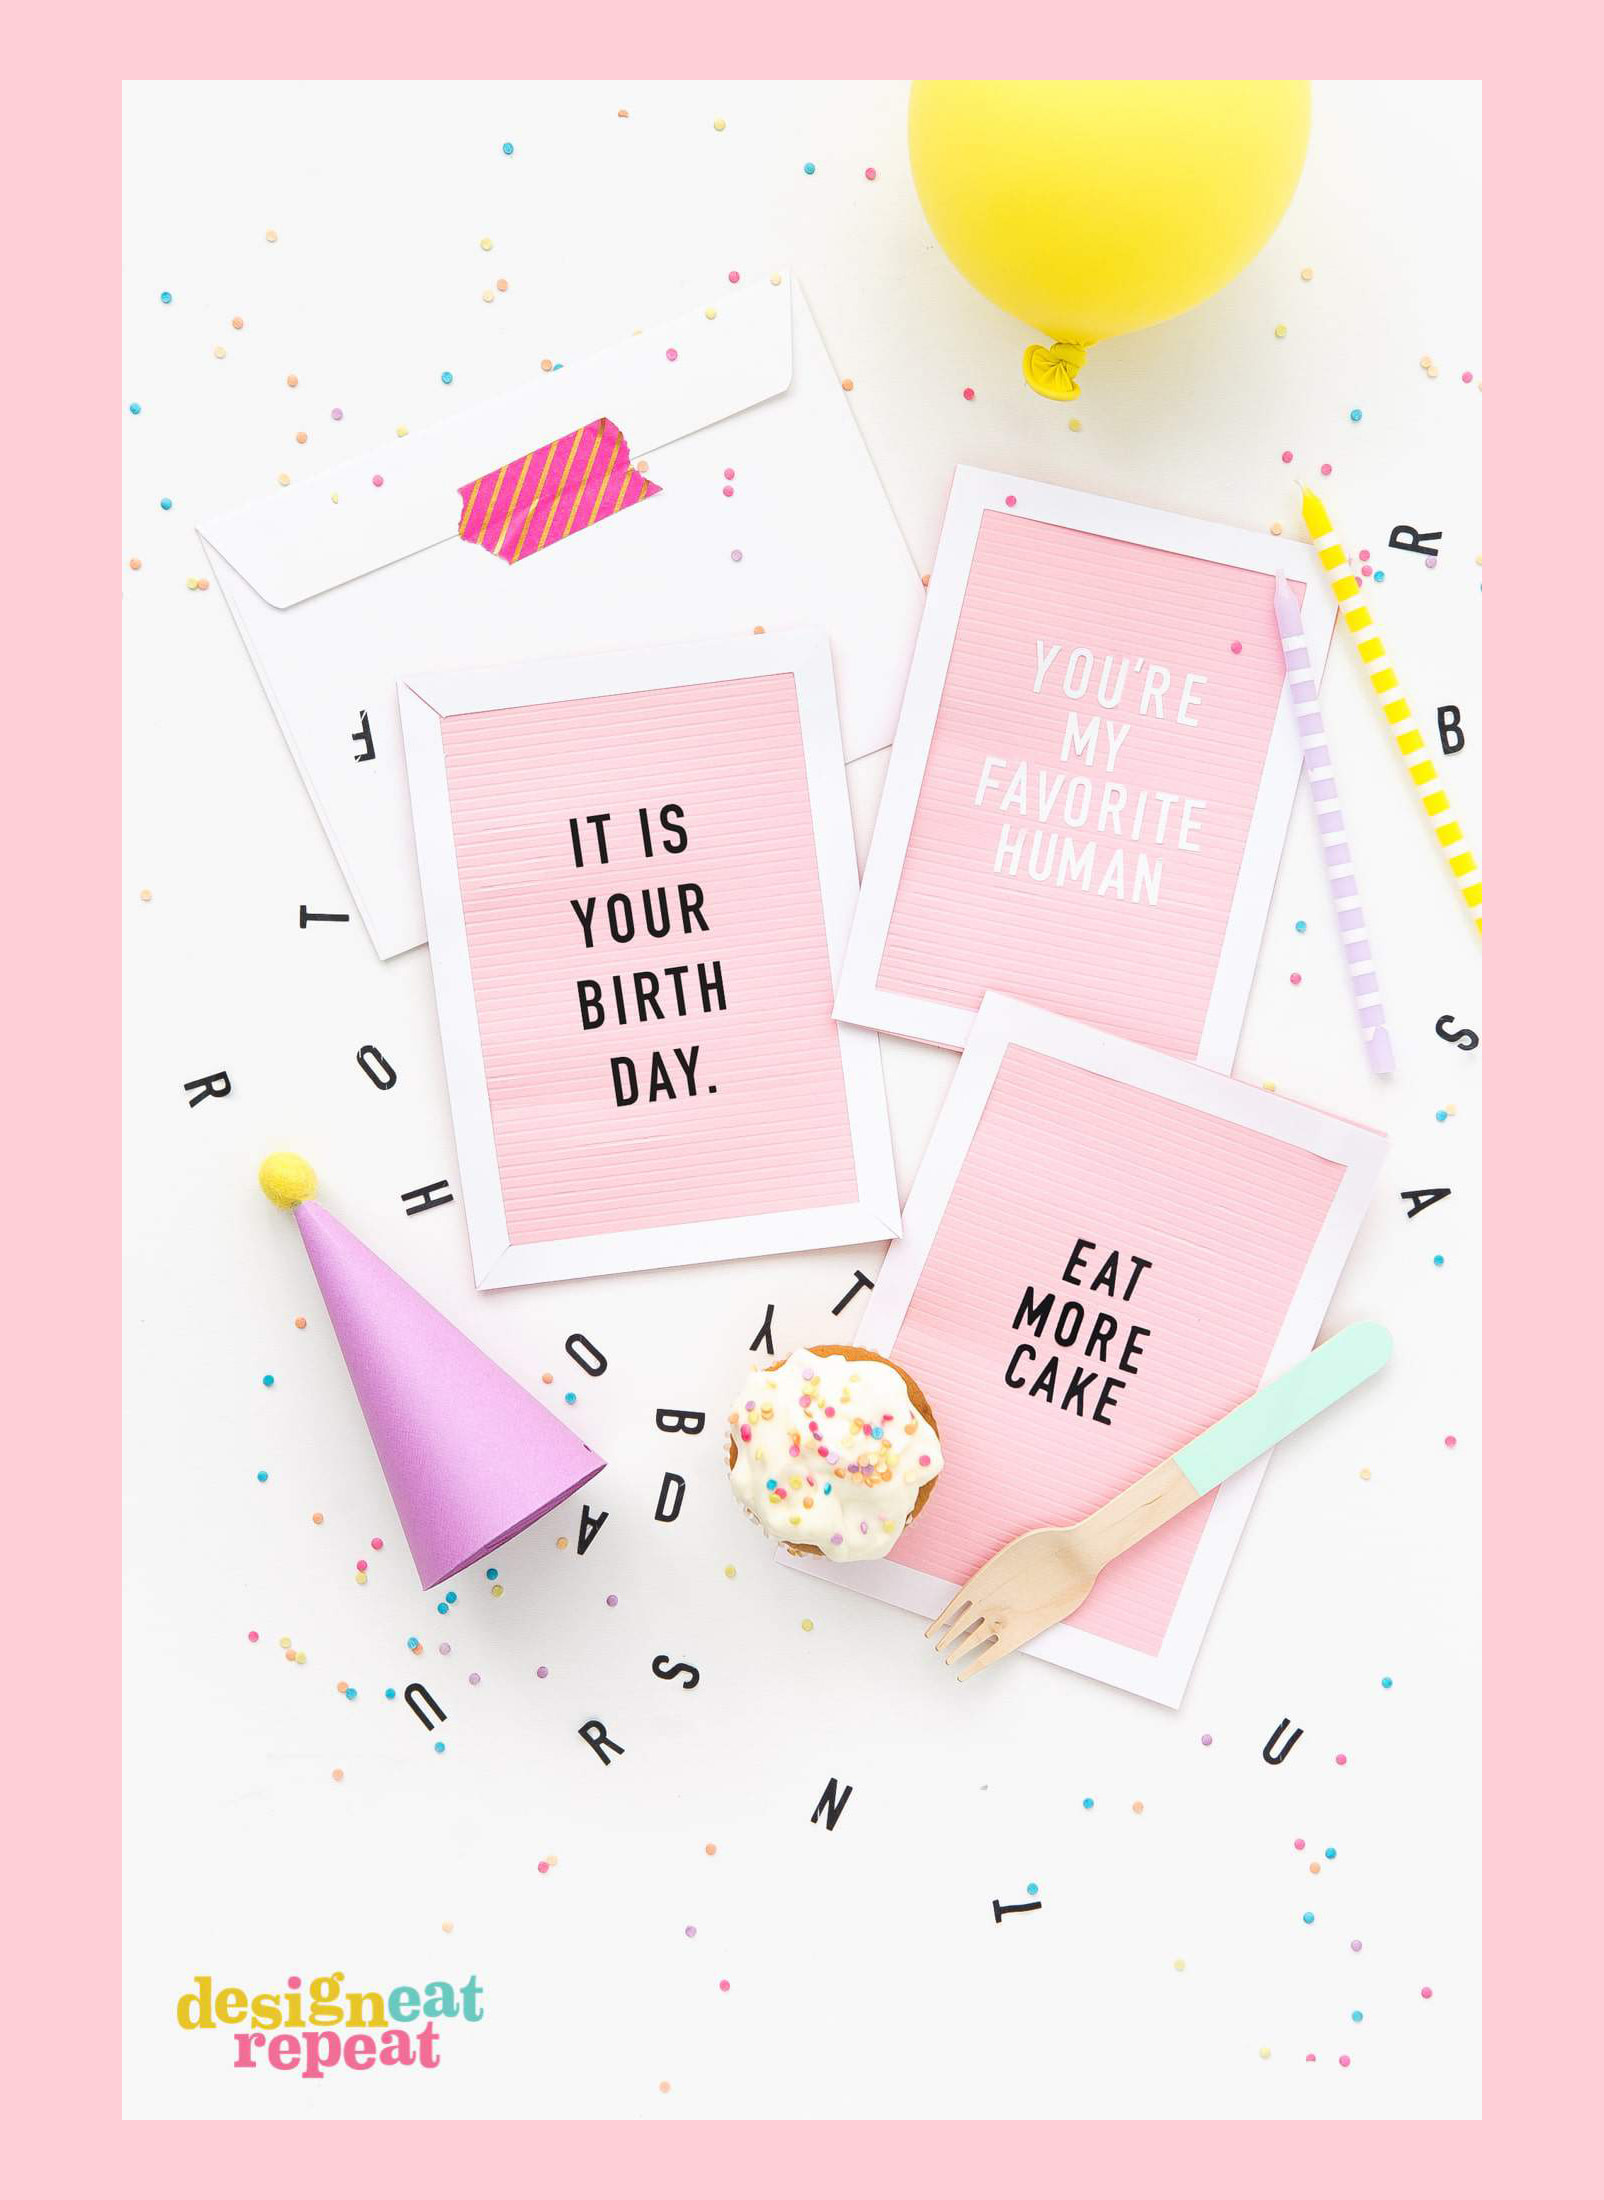 8 Adult Birthday Card Ideas to Inspire You